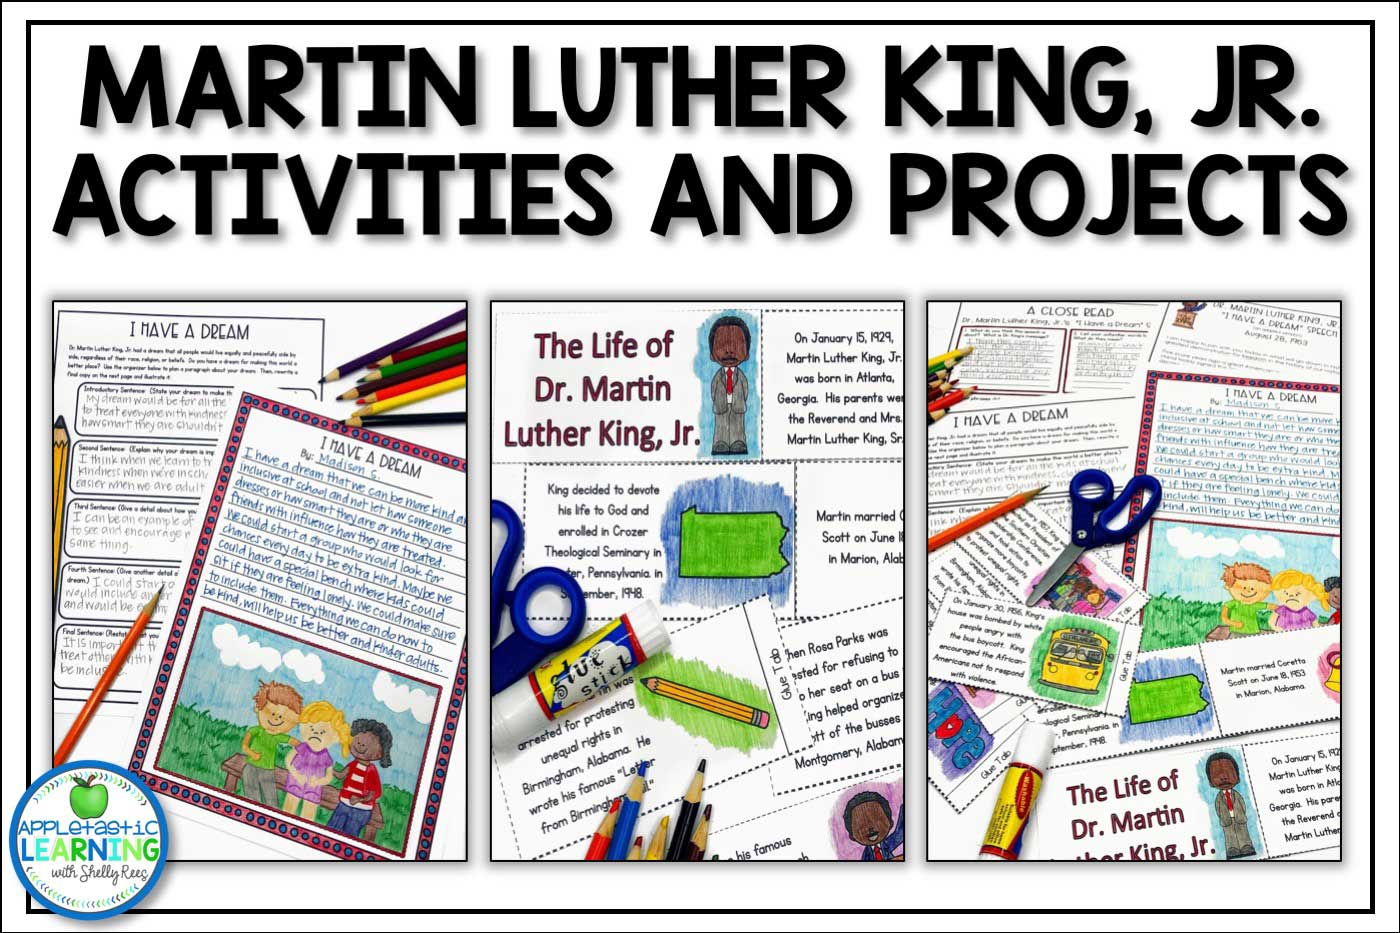 Martin Luther King Jr. activities and projects